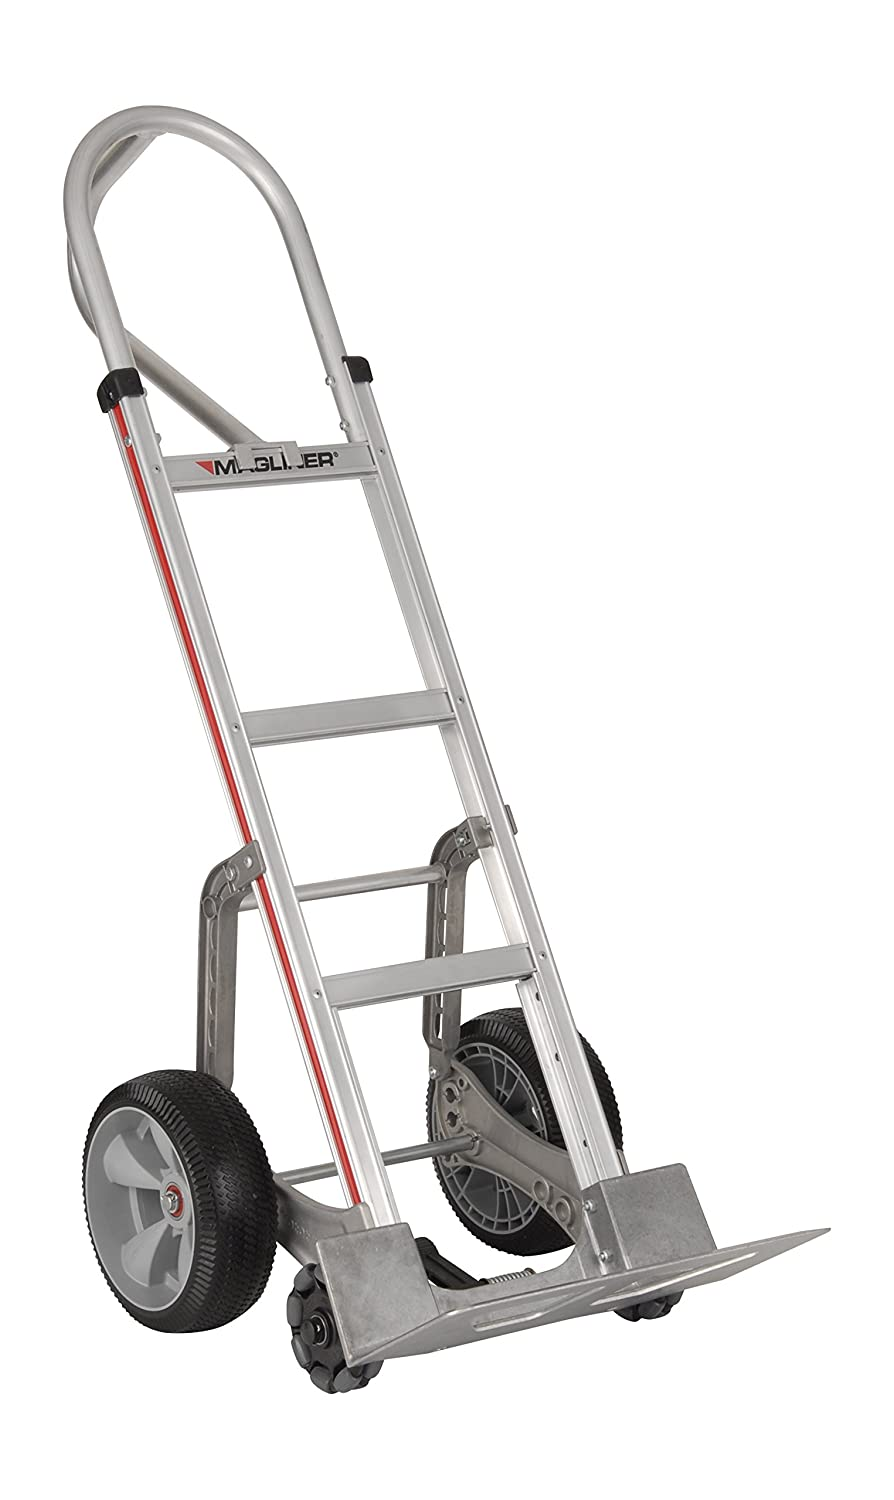 Magliner HRK15AUAE3 Self-Stabilizing Hand Truck, Vertical Loop Handle, Interlocked Microcellular Foam Wheels, Straight Back Frame, 500 lb Capacity